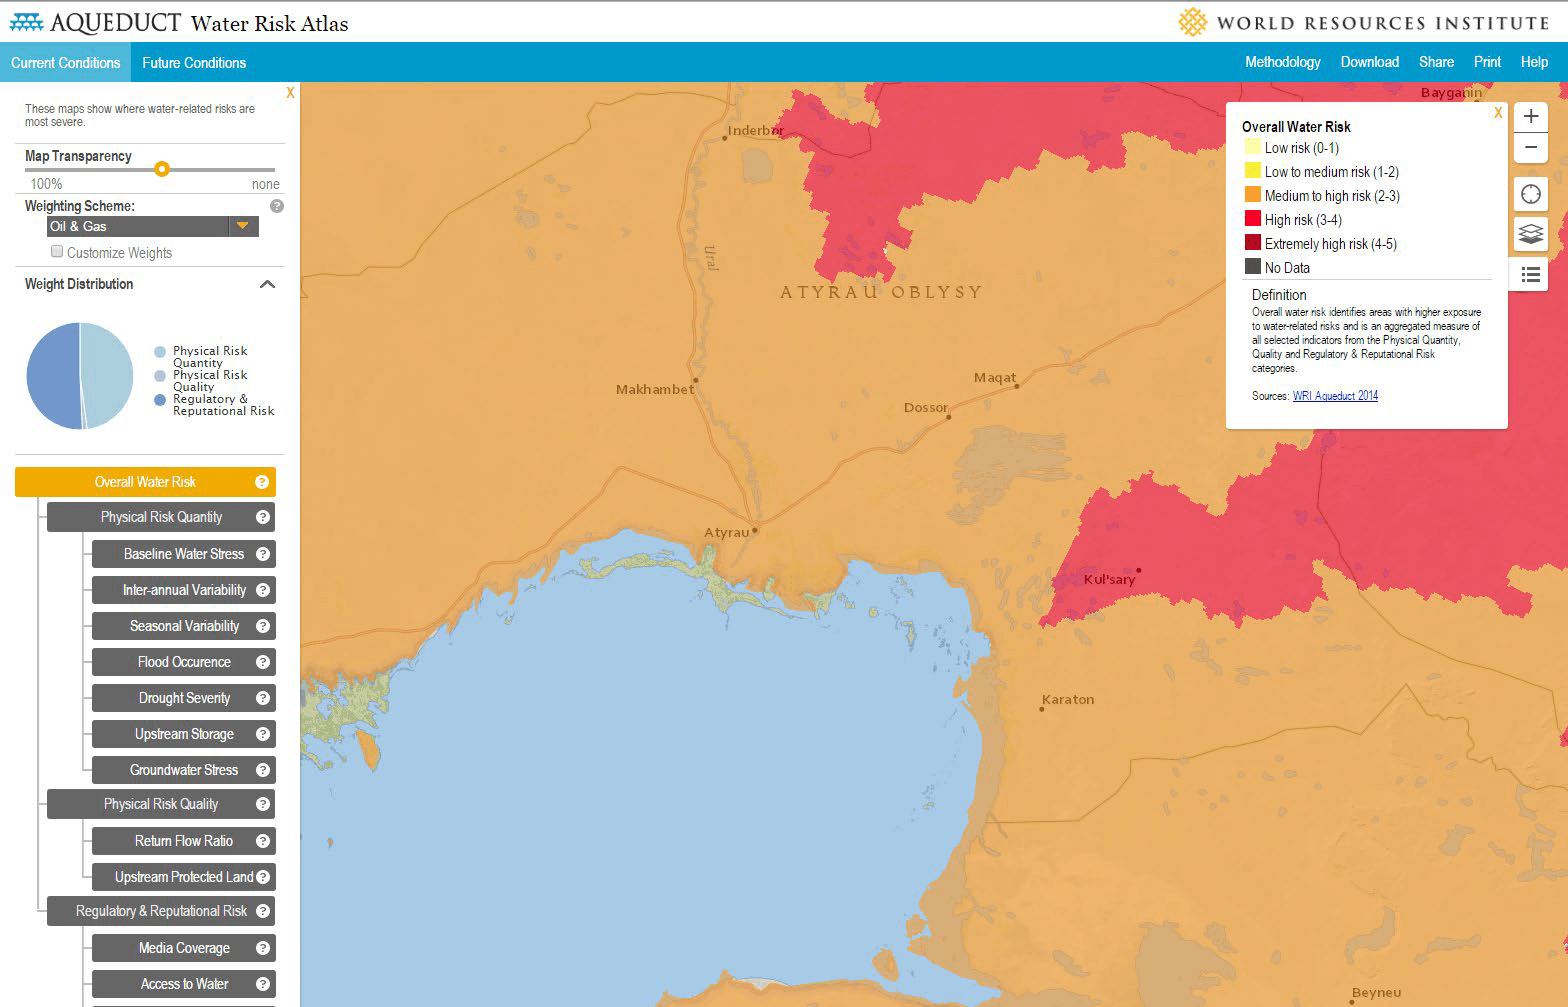 Screenshot of the WRI Aqueduct Water Risk Atlas